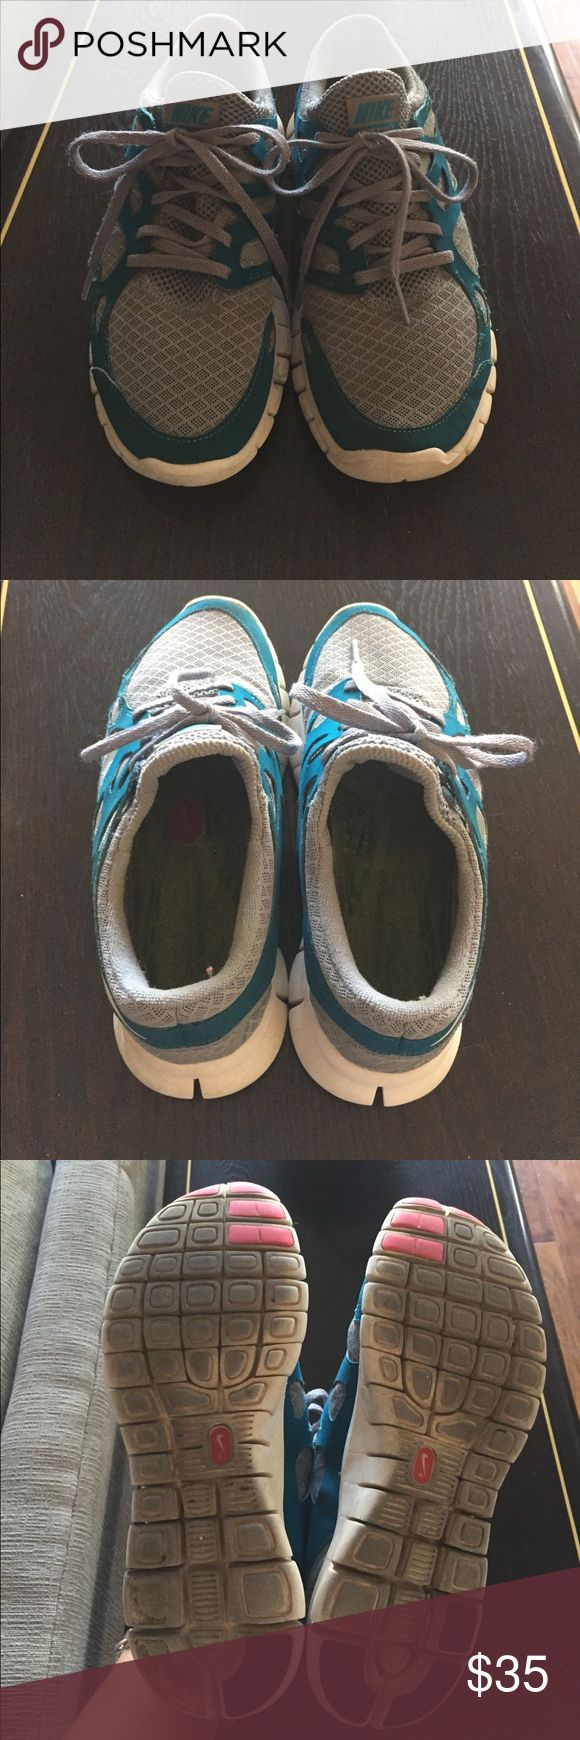 Size 8 Nike Free Run 2 Well worn, but in great condition. Removable inserts. Connects to Nike+ Run club with a sensor on the shoe. Size 8 runs true to size. Nike Shoes Athletic Shoes